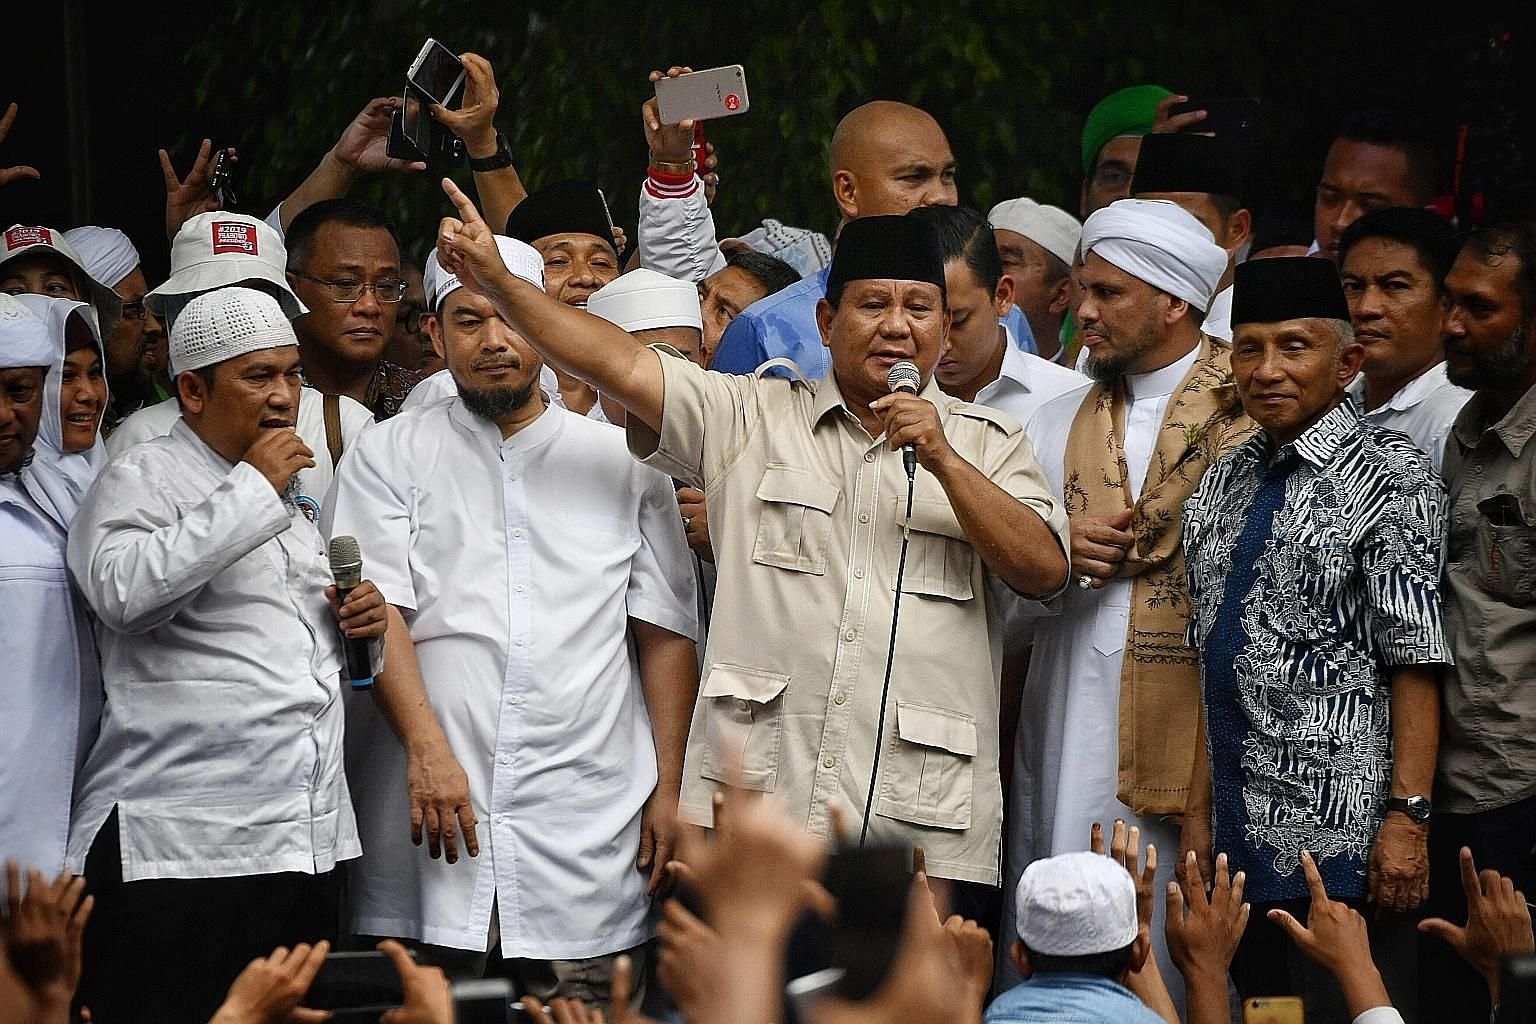 Presidential hopeful Prabowo Subianto, speaking to supporters outside his Jakarta residence last Friday, is dismissing unofficial quick counts and claiming he has won the election before the election commission has announced official results.